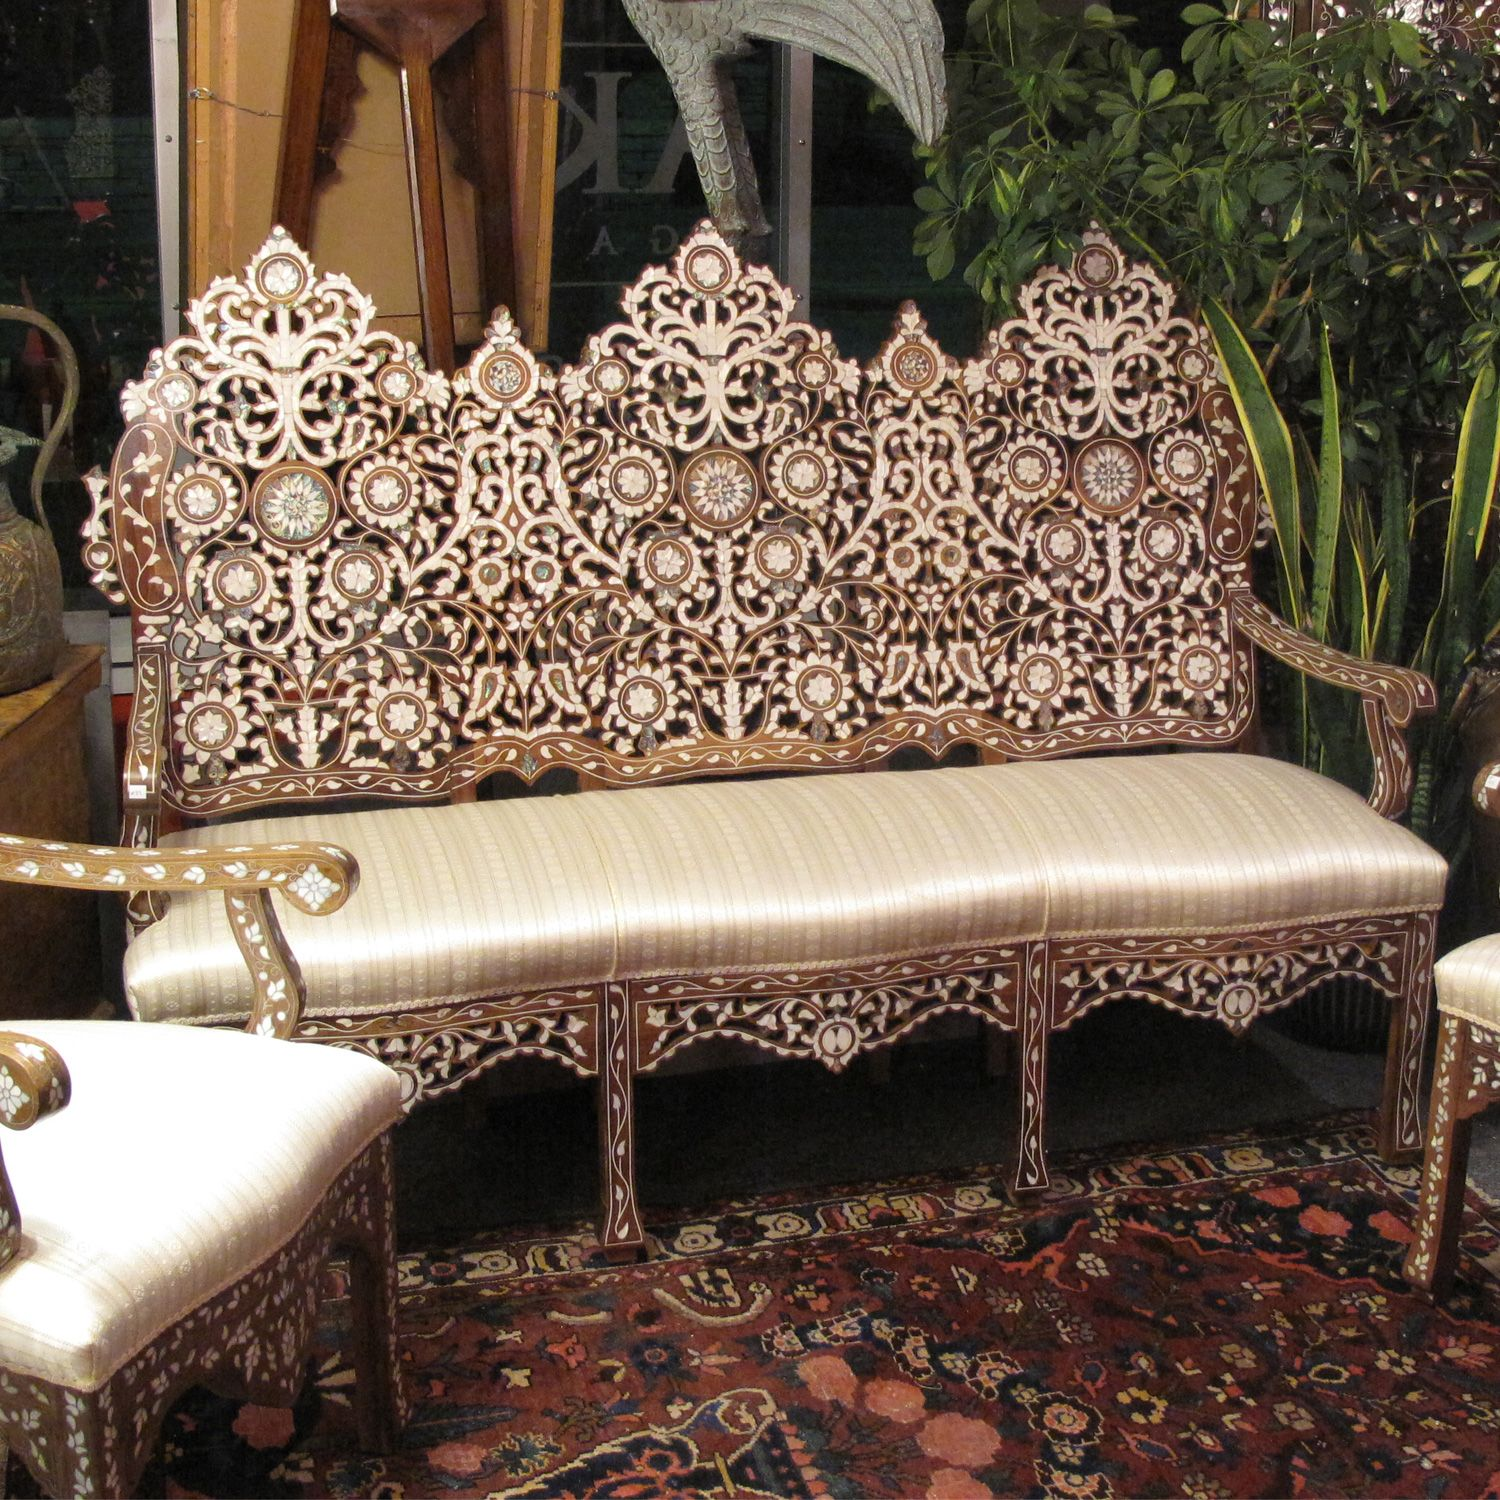 A Syrian Mother Of Pearl Bench Available To Purchase At: Oyster King Sofa In 2019